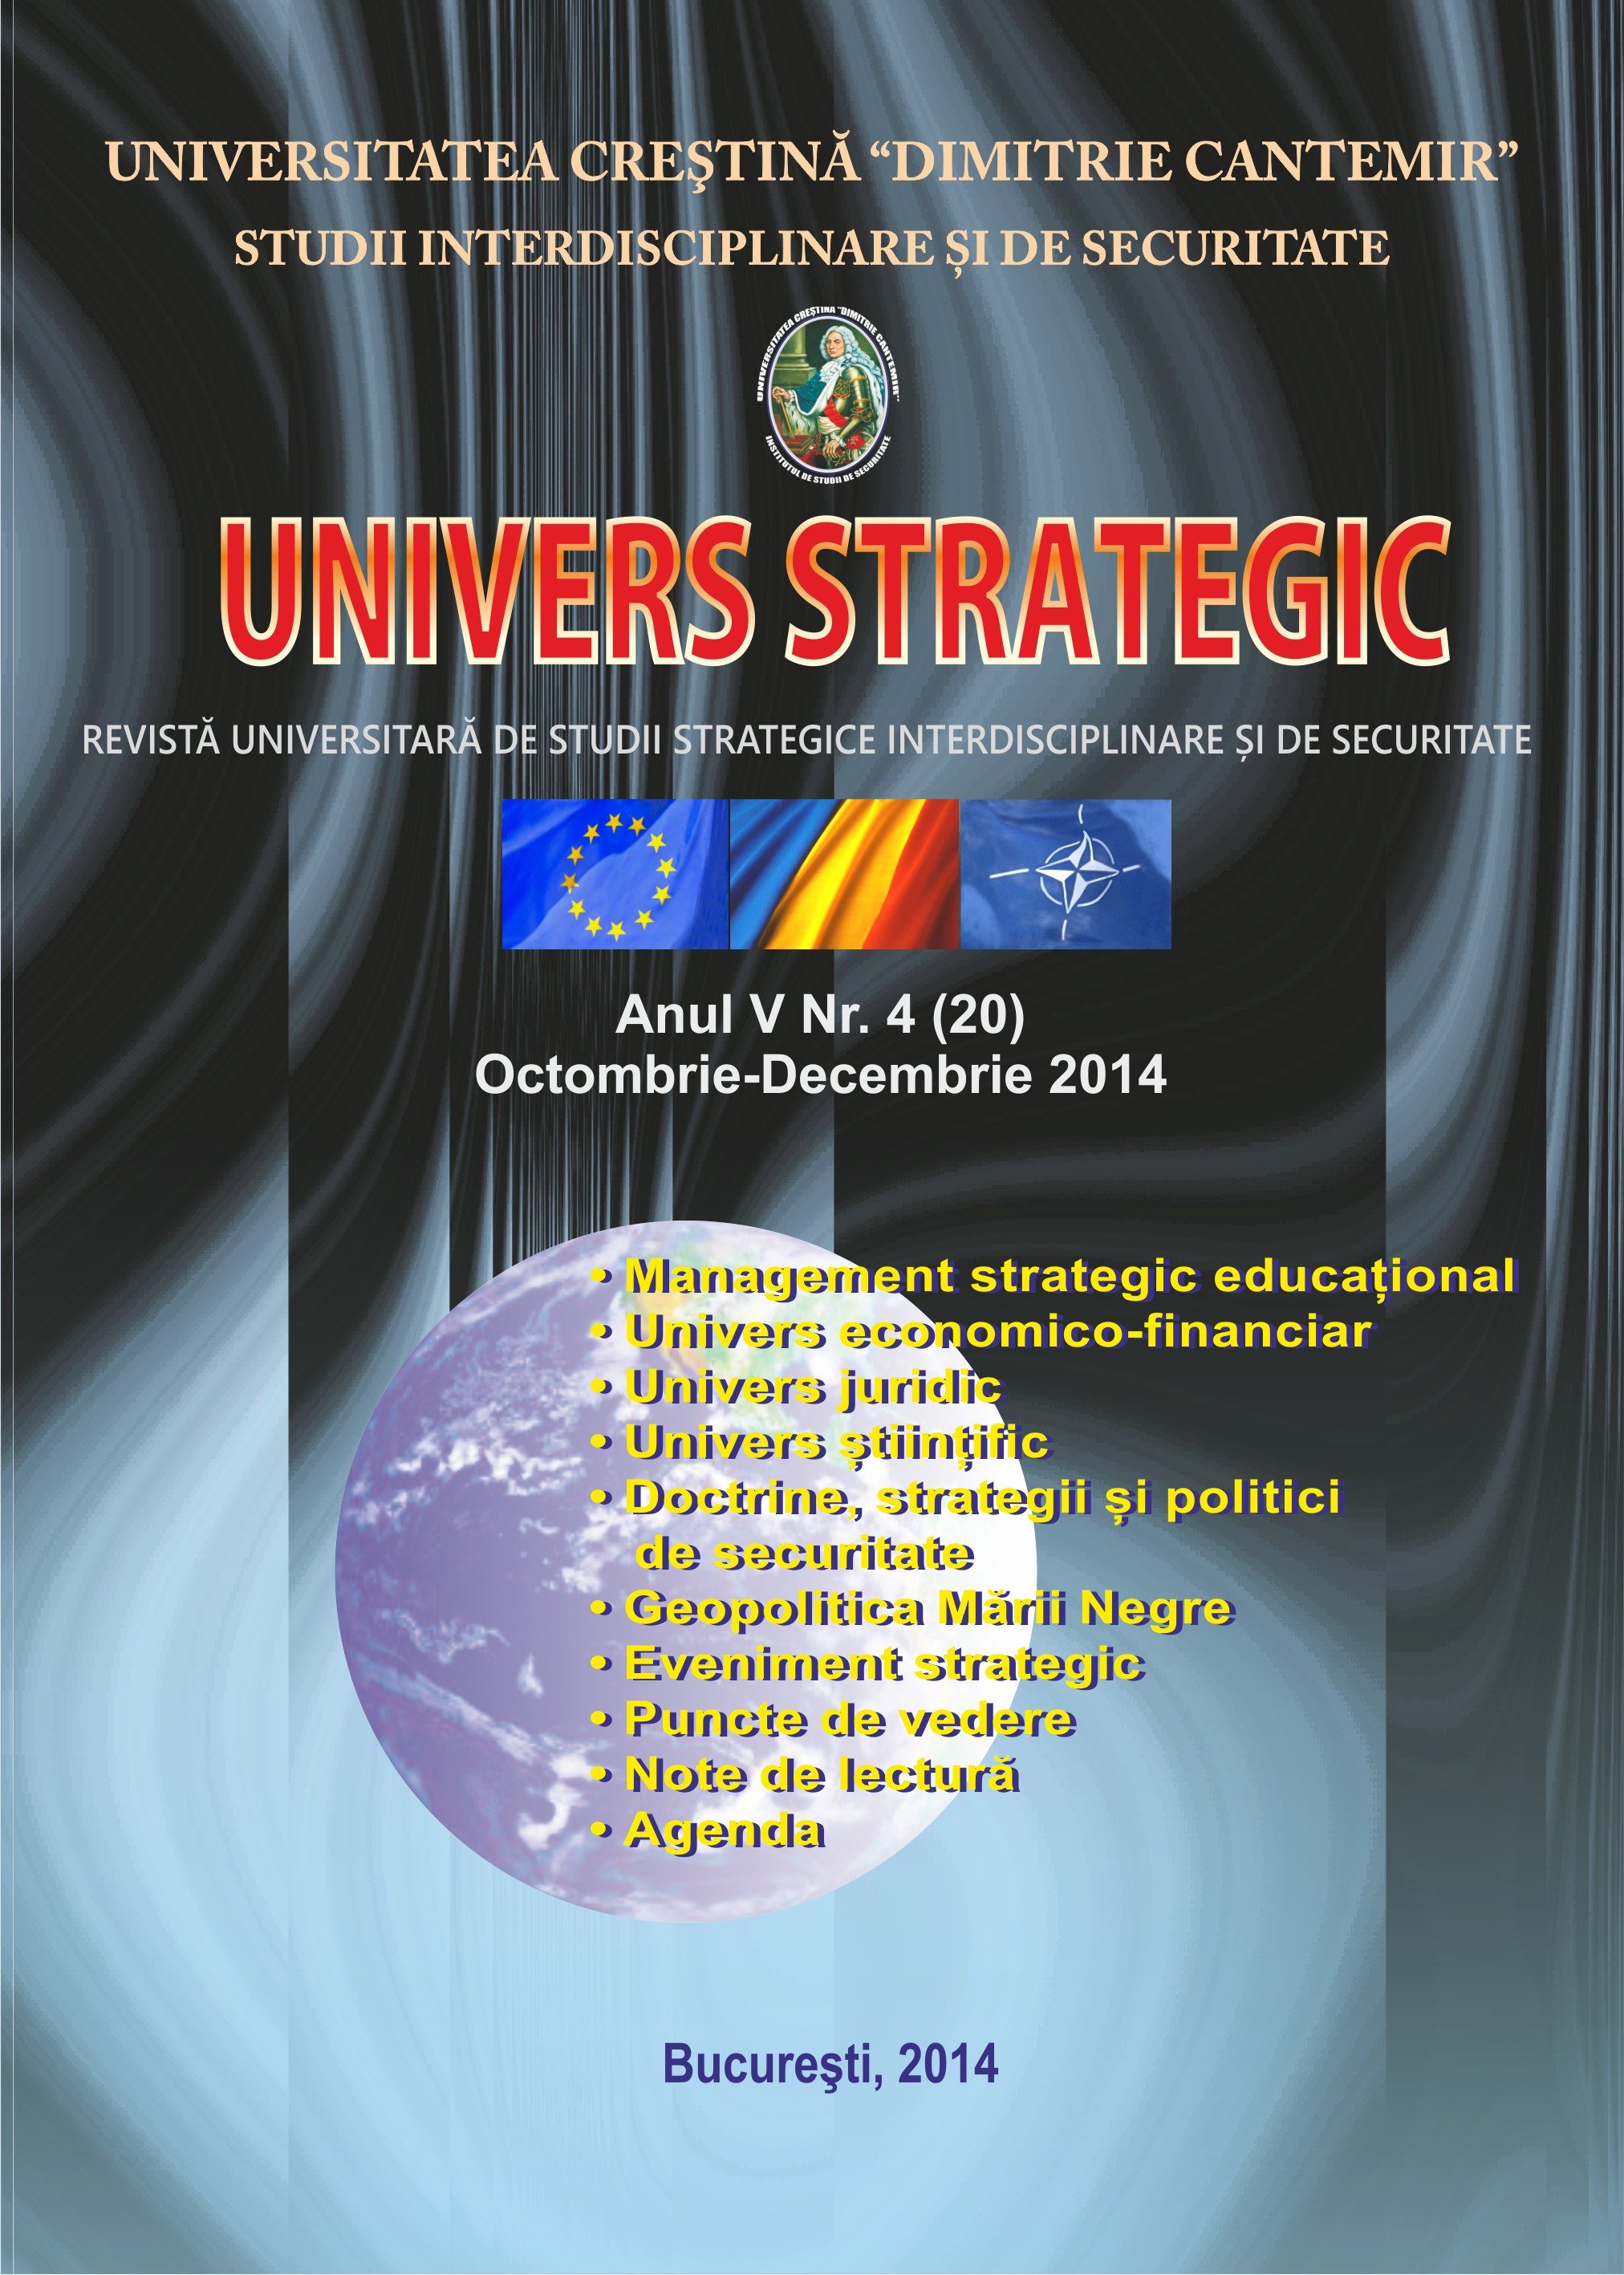 SCIENTIFIC RESEARCH, TECHNOLOGICAL DEVELOPMENT AND INNOVATION ACTIVITY, A STRATEGIC AREA NEGLECTED Cover Image